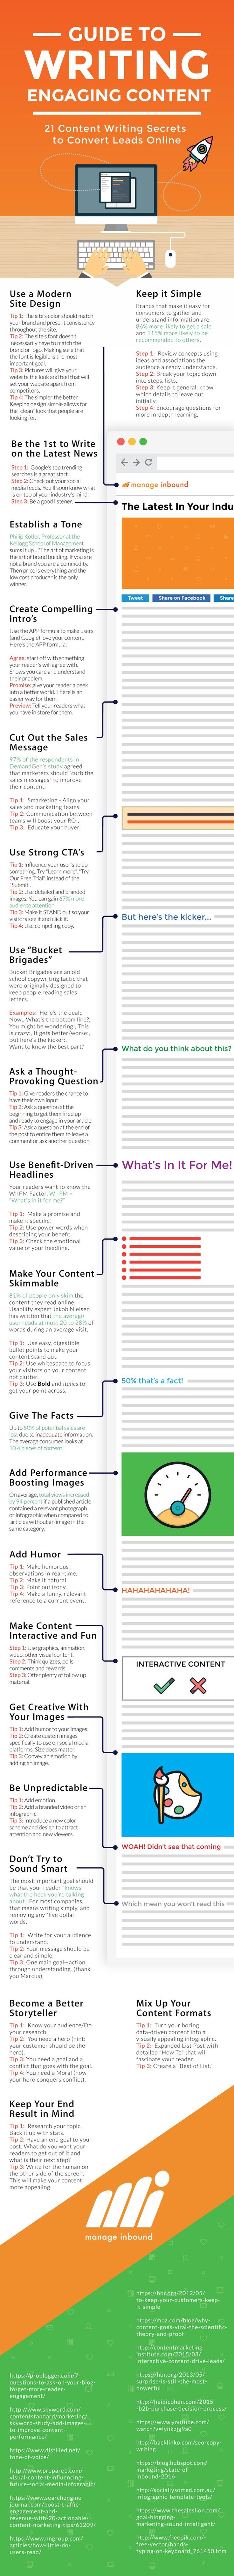 21 Actionable Tips to Create Website Content Your Visitors Will Love [Infographic]